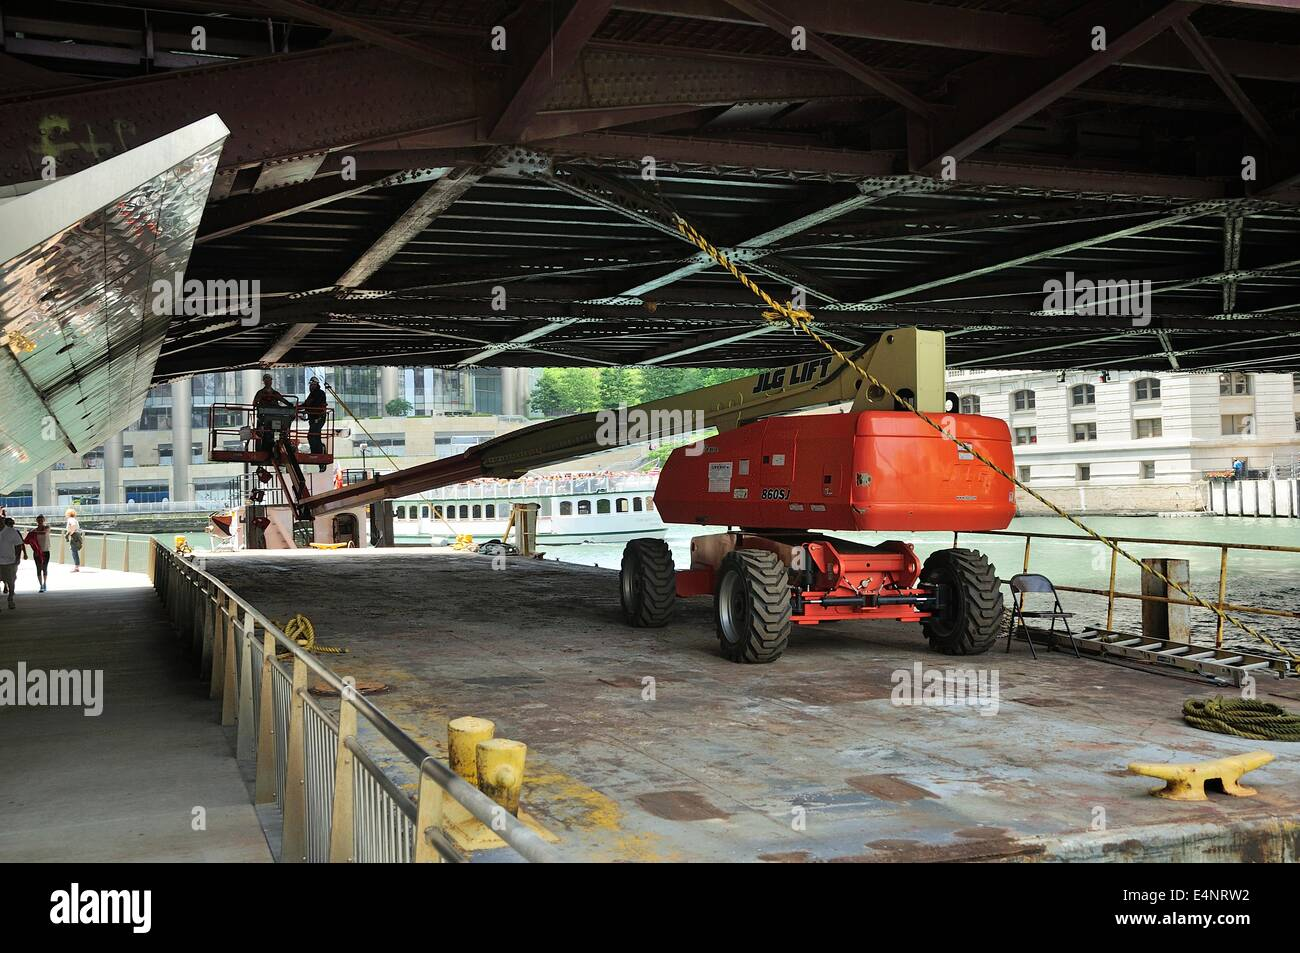 Construction workers repairing a Chicago River bridge. - Stock Image